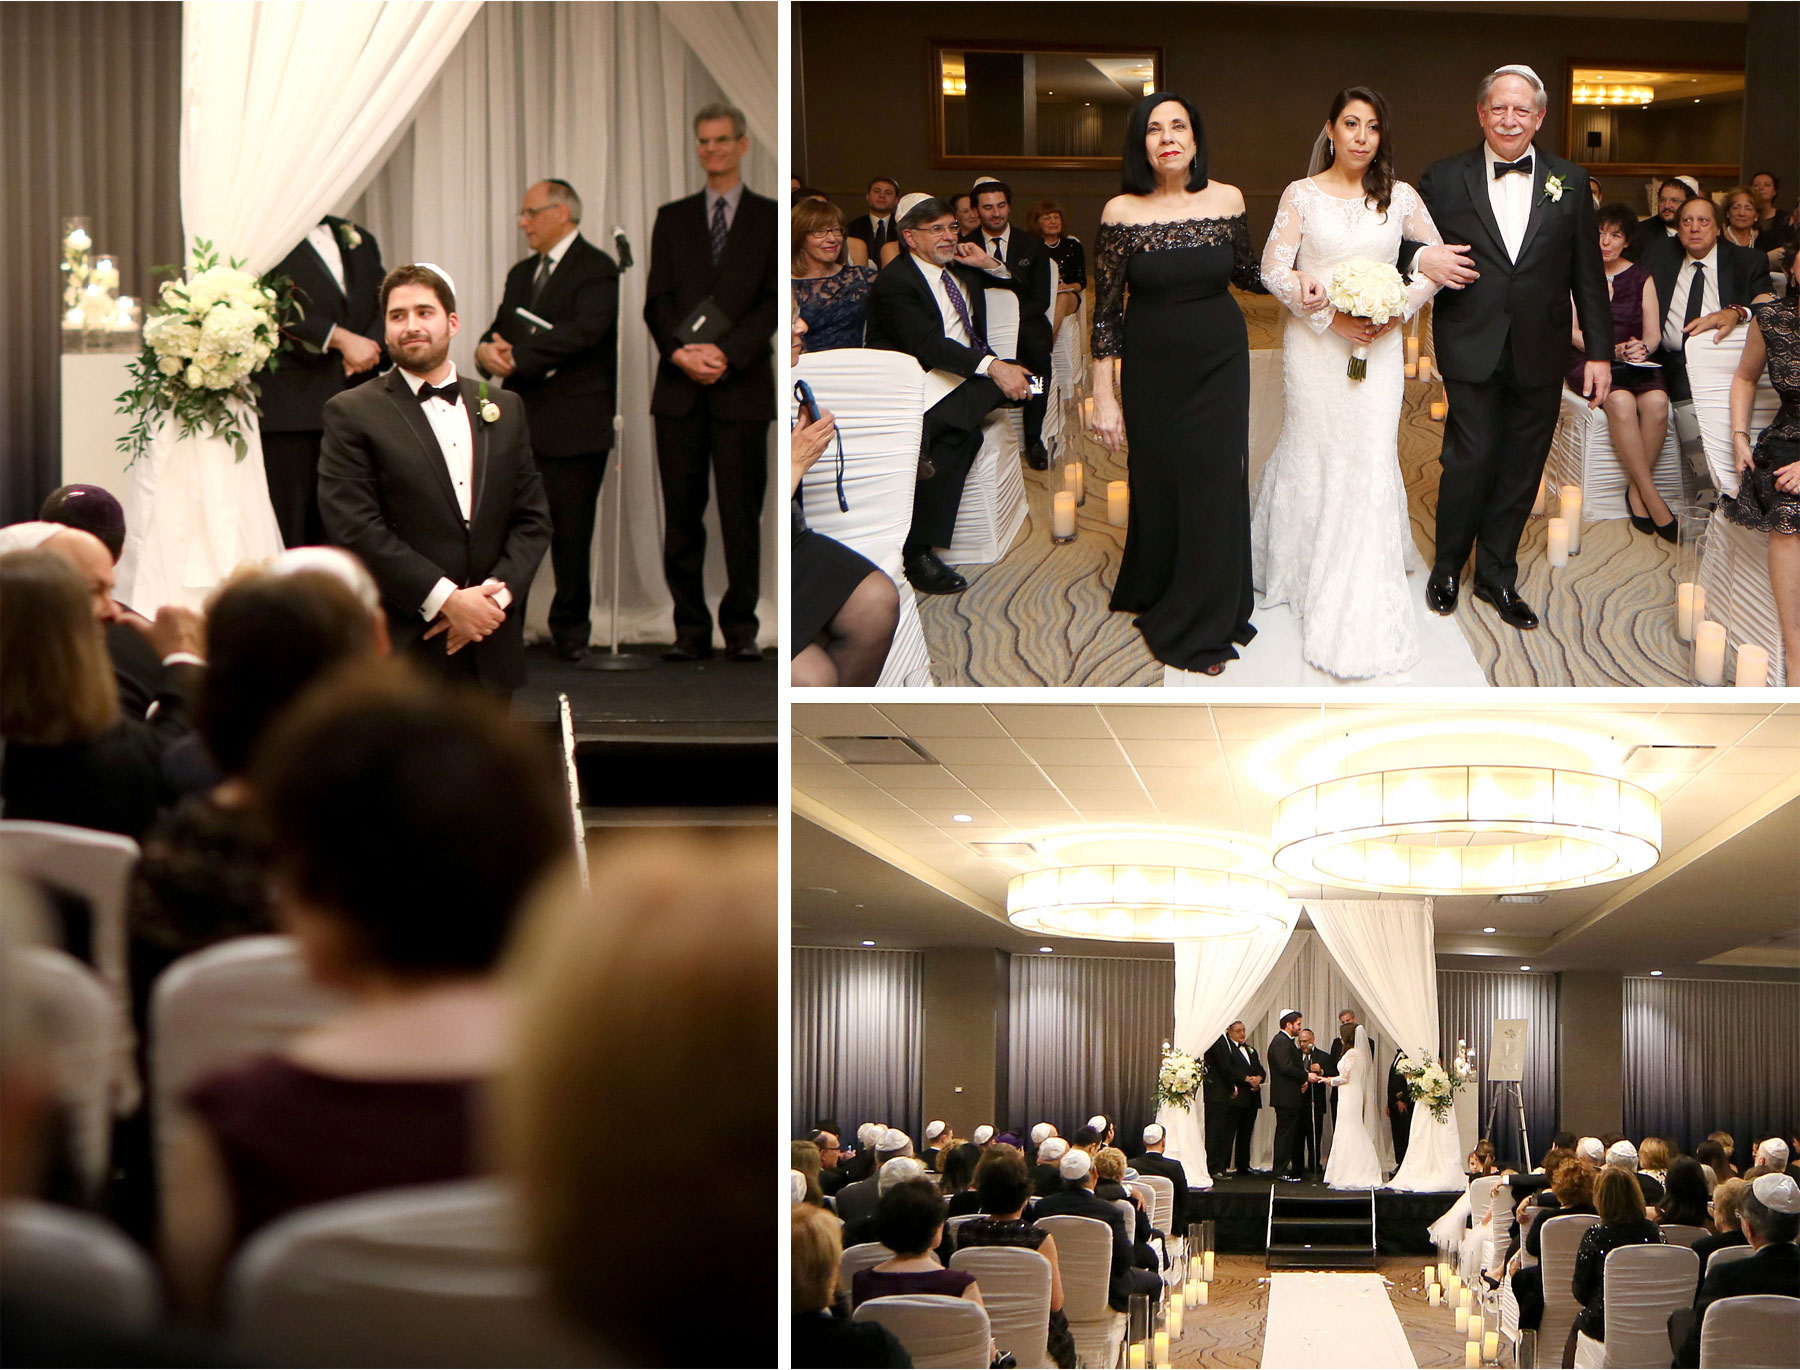 11-Minneapolis-Minnesota-Wedding-Photographer-by-Andrew-Vick-Photography-Winter-Hyatt-Regency-Hotel-Ceremony-Bride-Groom-Mother-Father-Parents-Processional-Rings-Yarmulke-Chuppah-Amy-and-Jordan.jpg